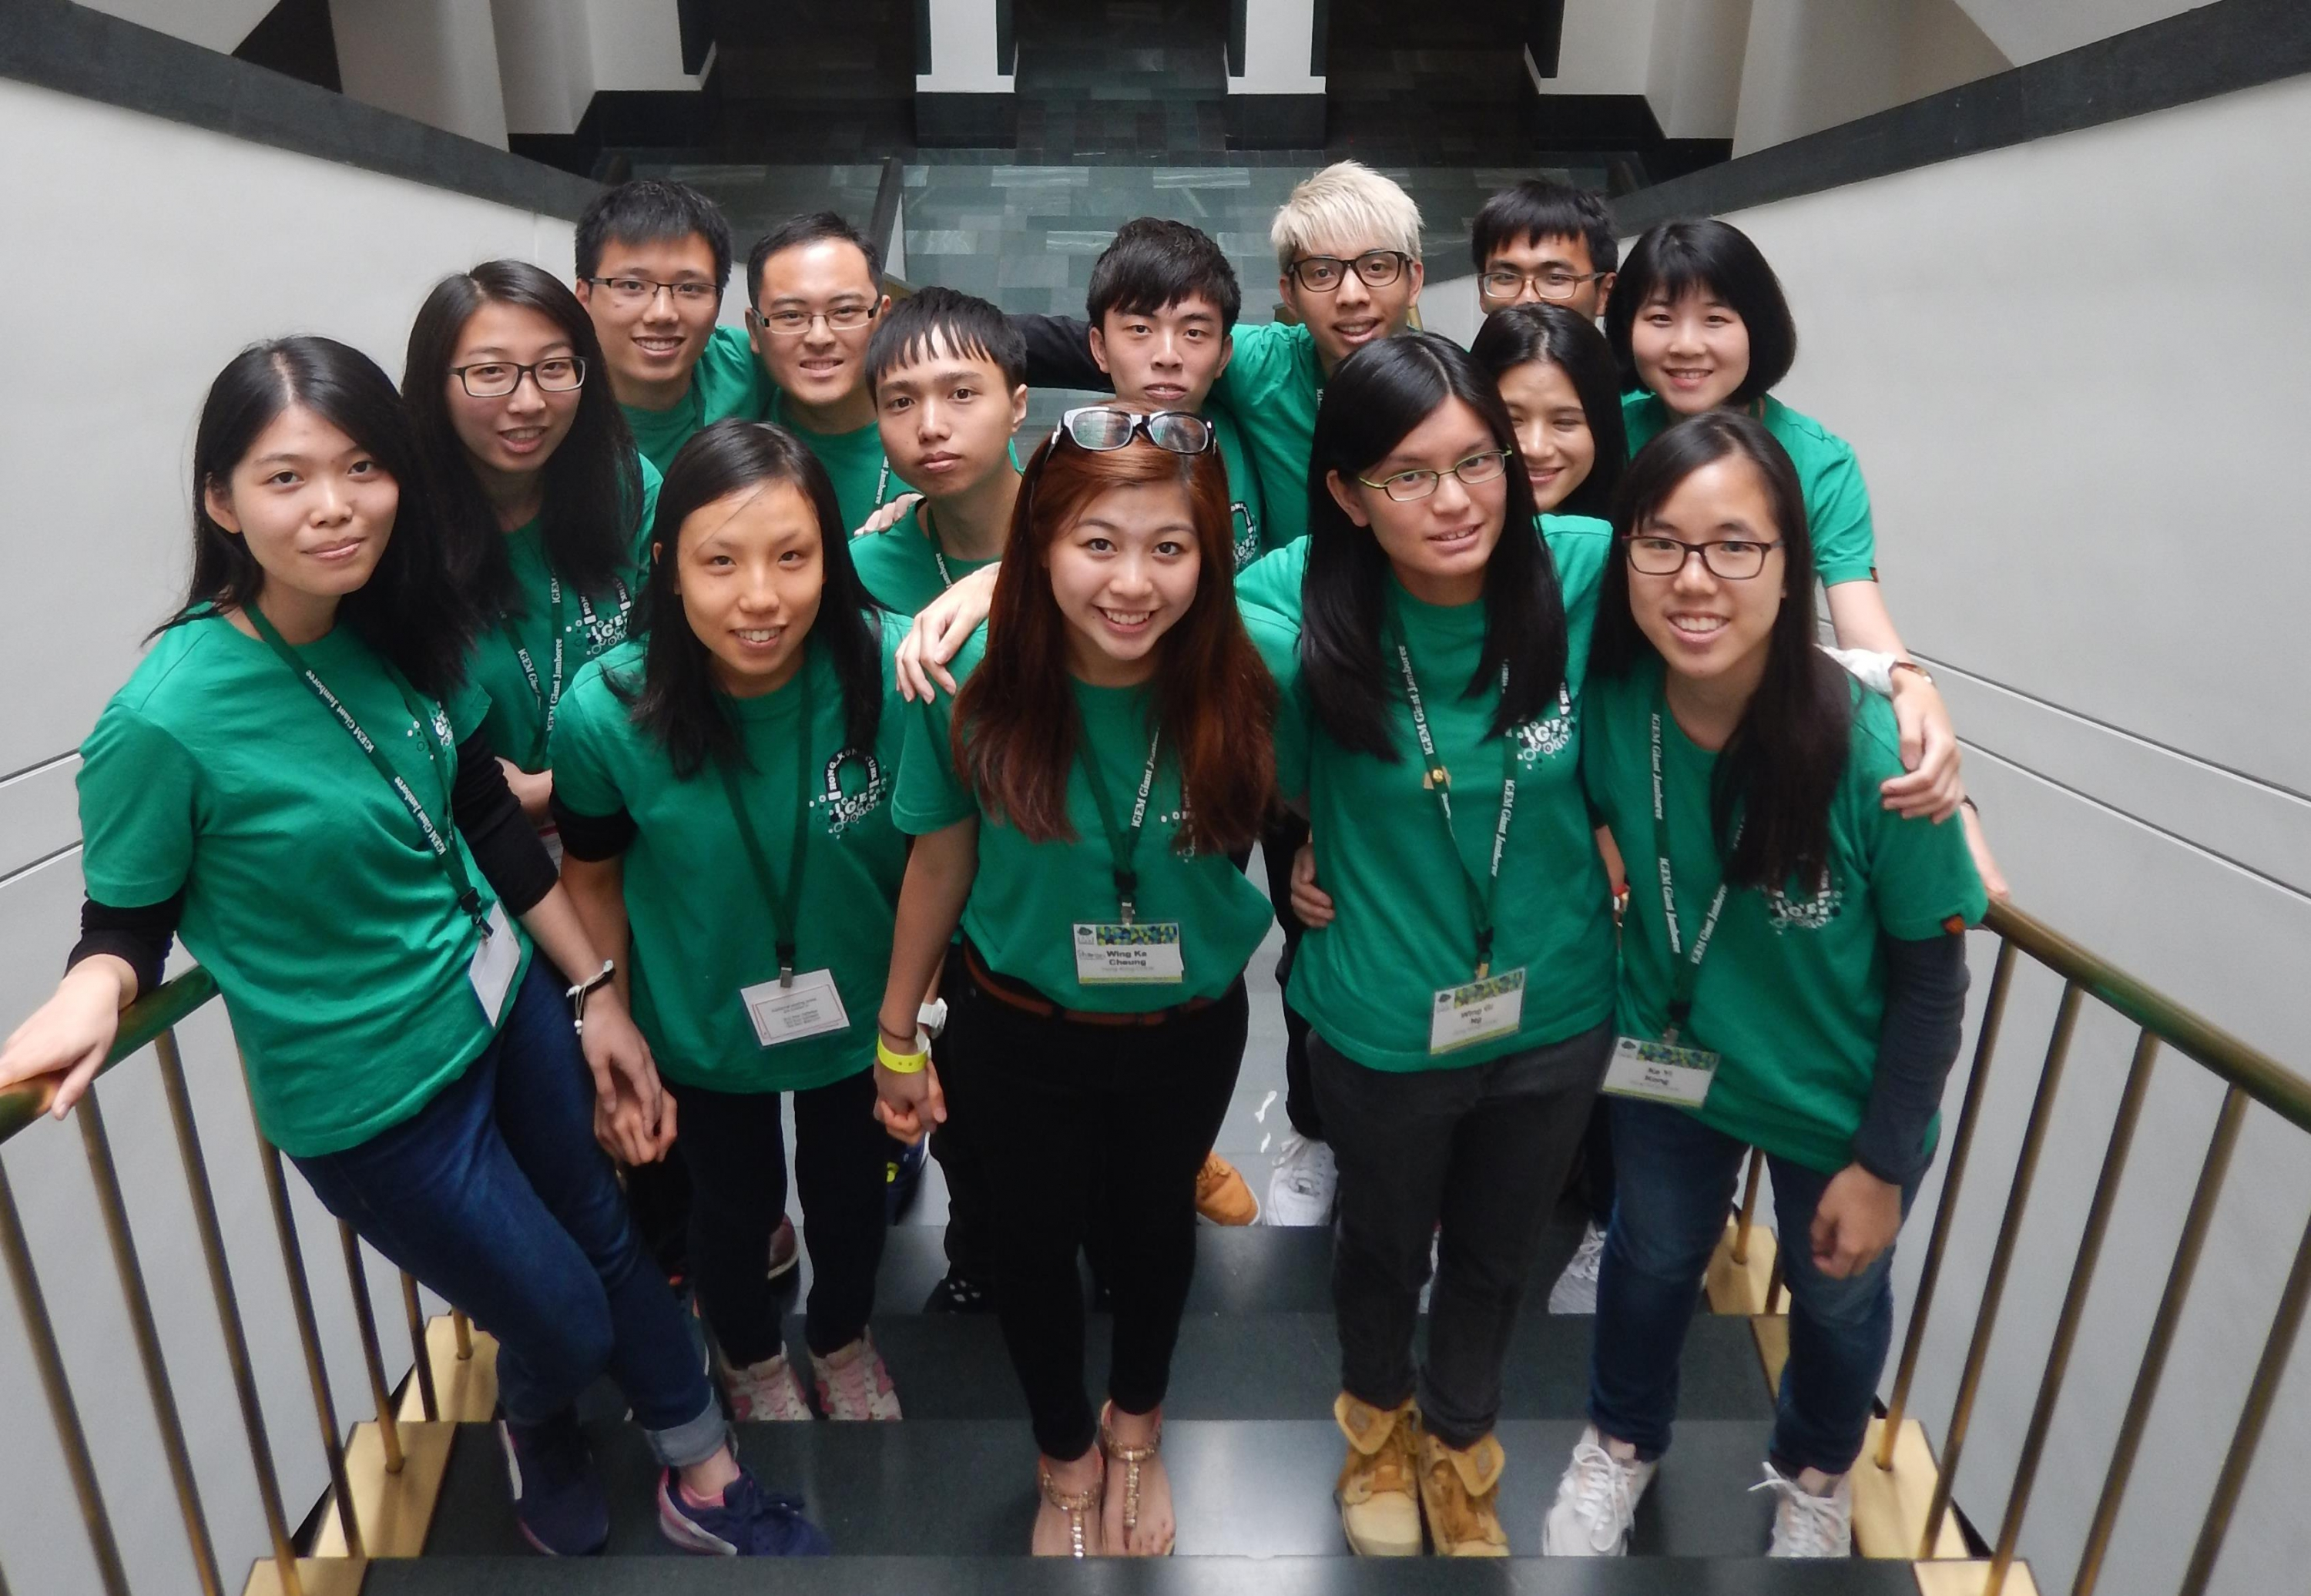 The CUHK team wins a gold medal at the International Genetic Engineered Machine (iGEM) finals.